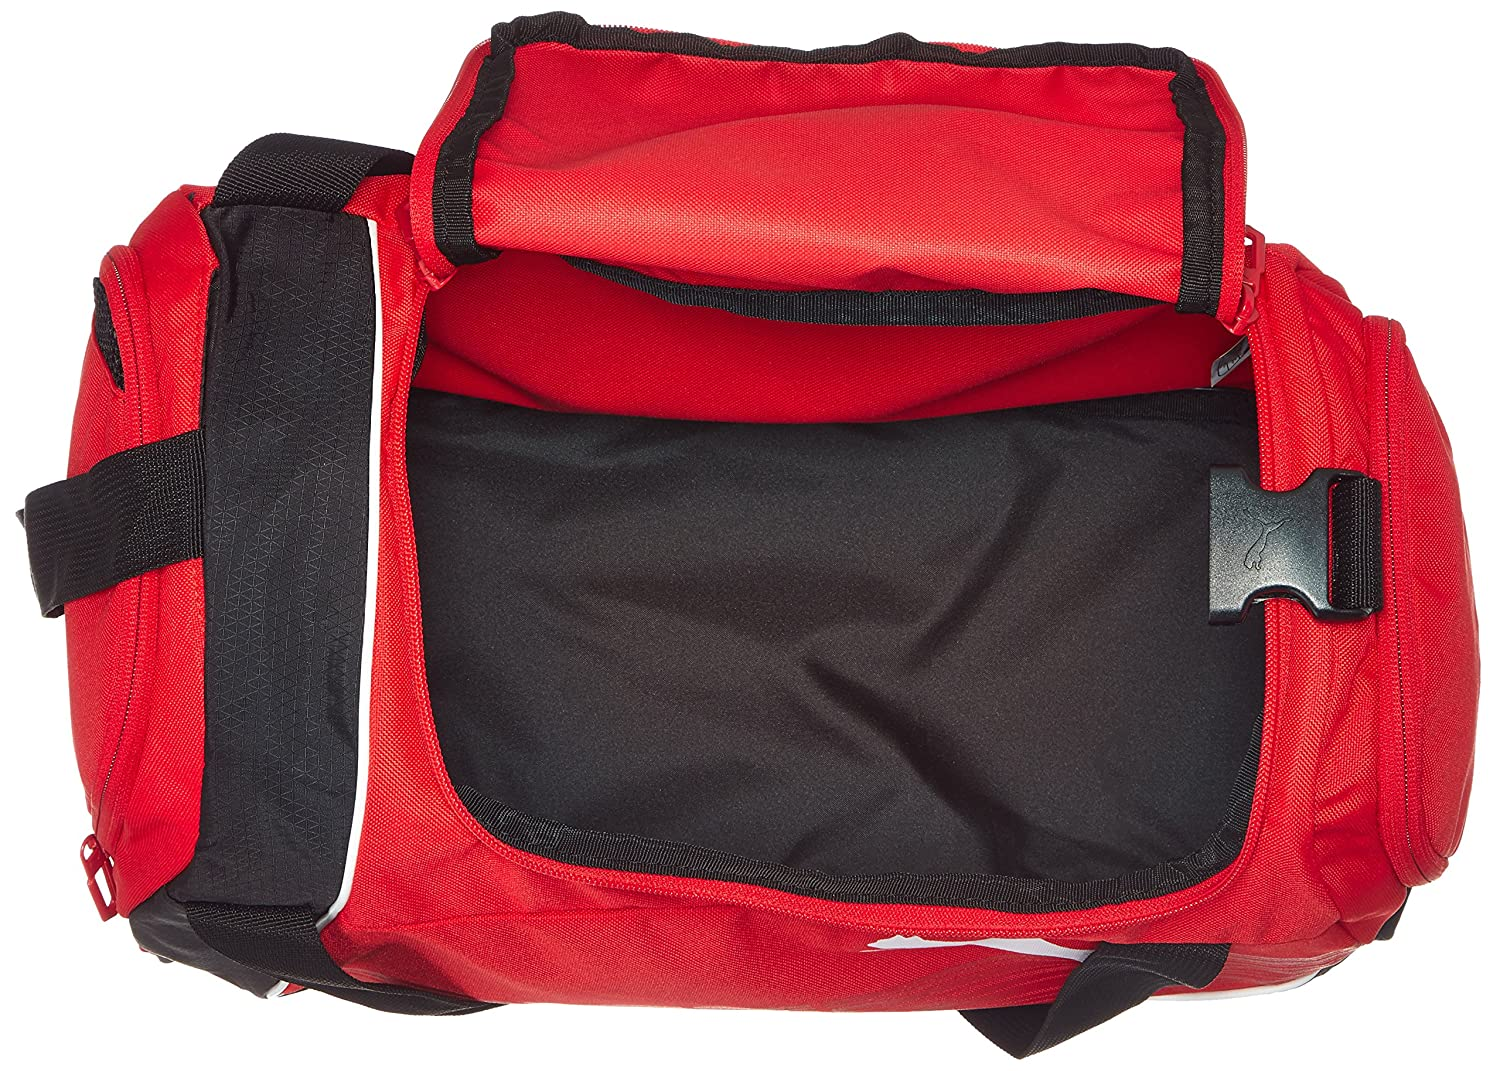 7b13ab9c9f Puma evoPOWER Small Bag - Red Black White